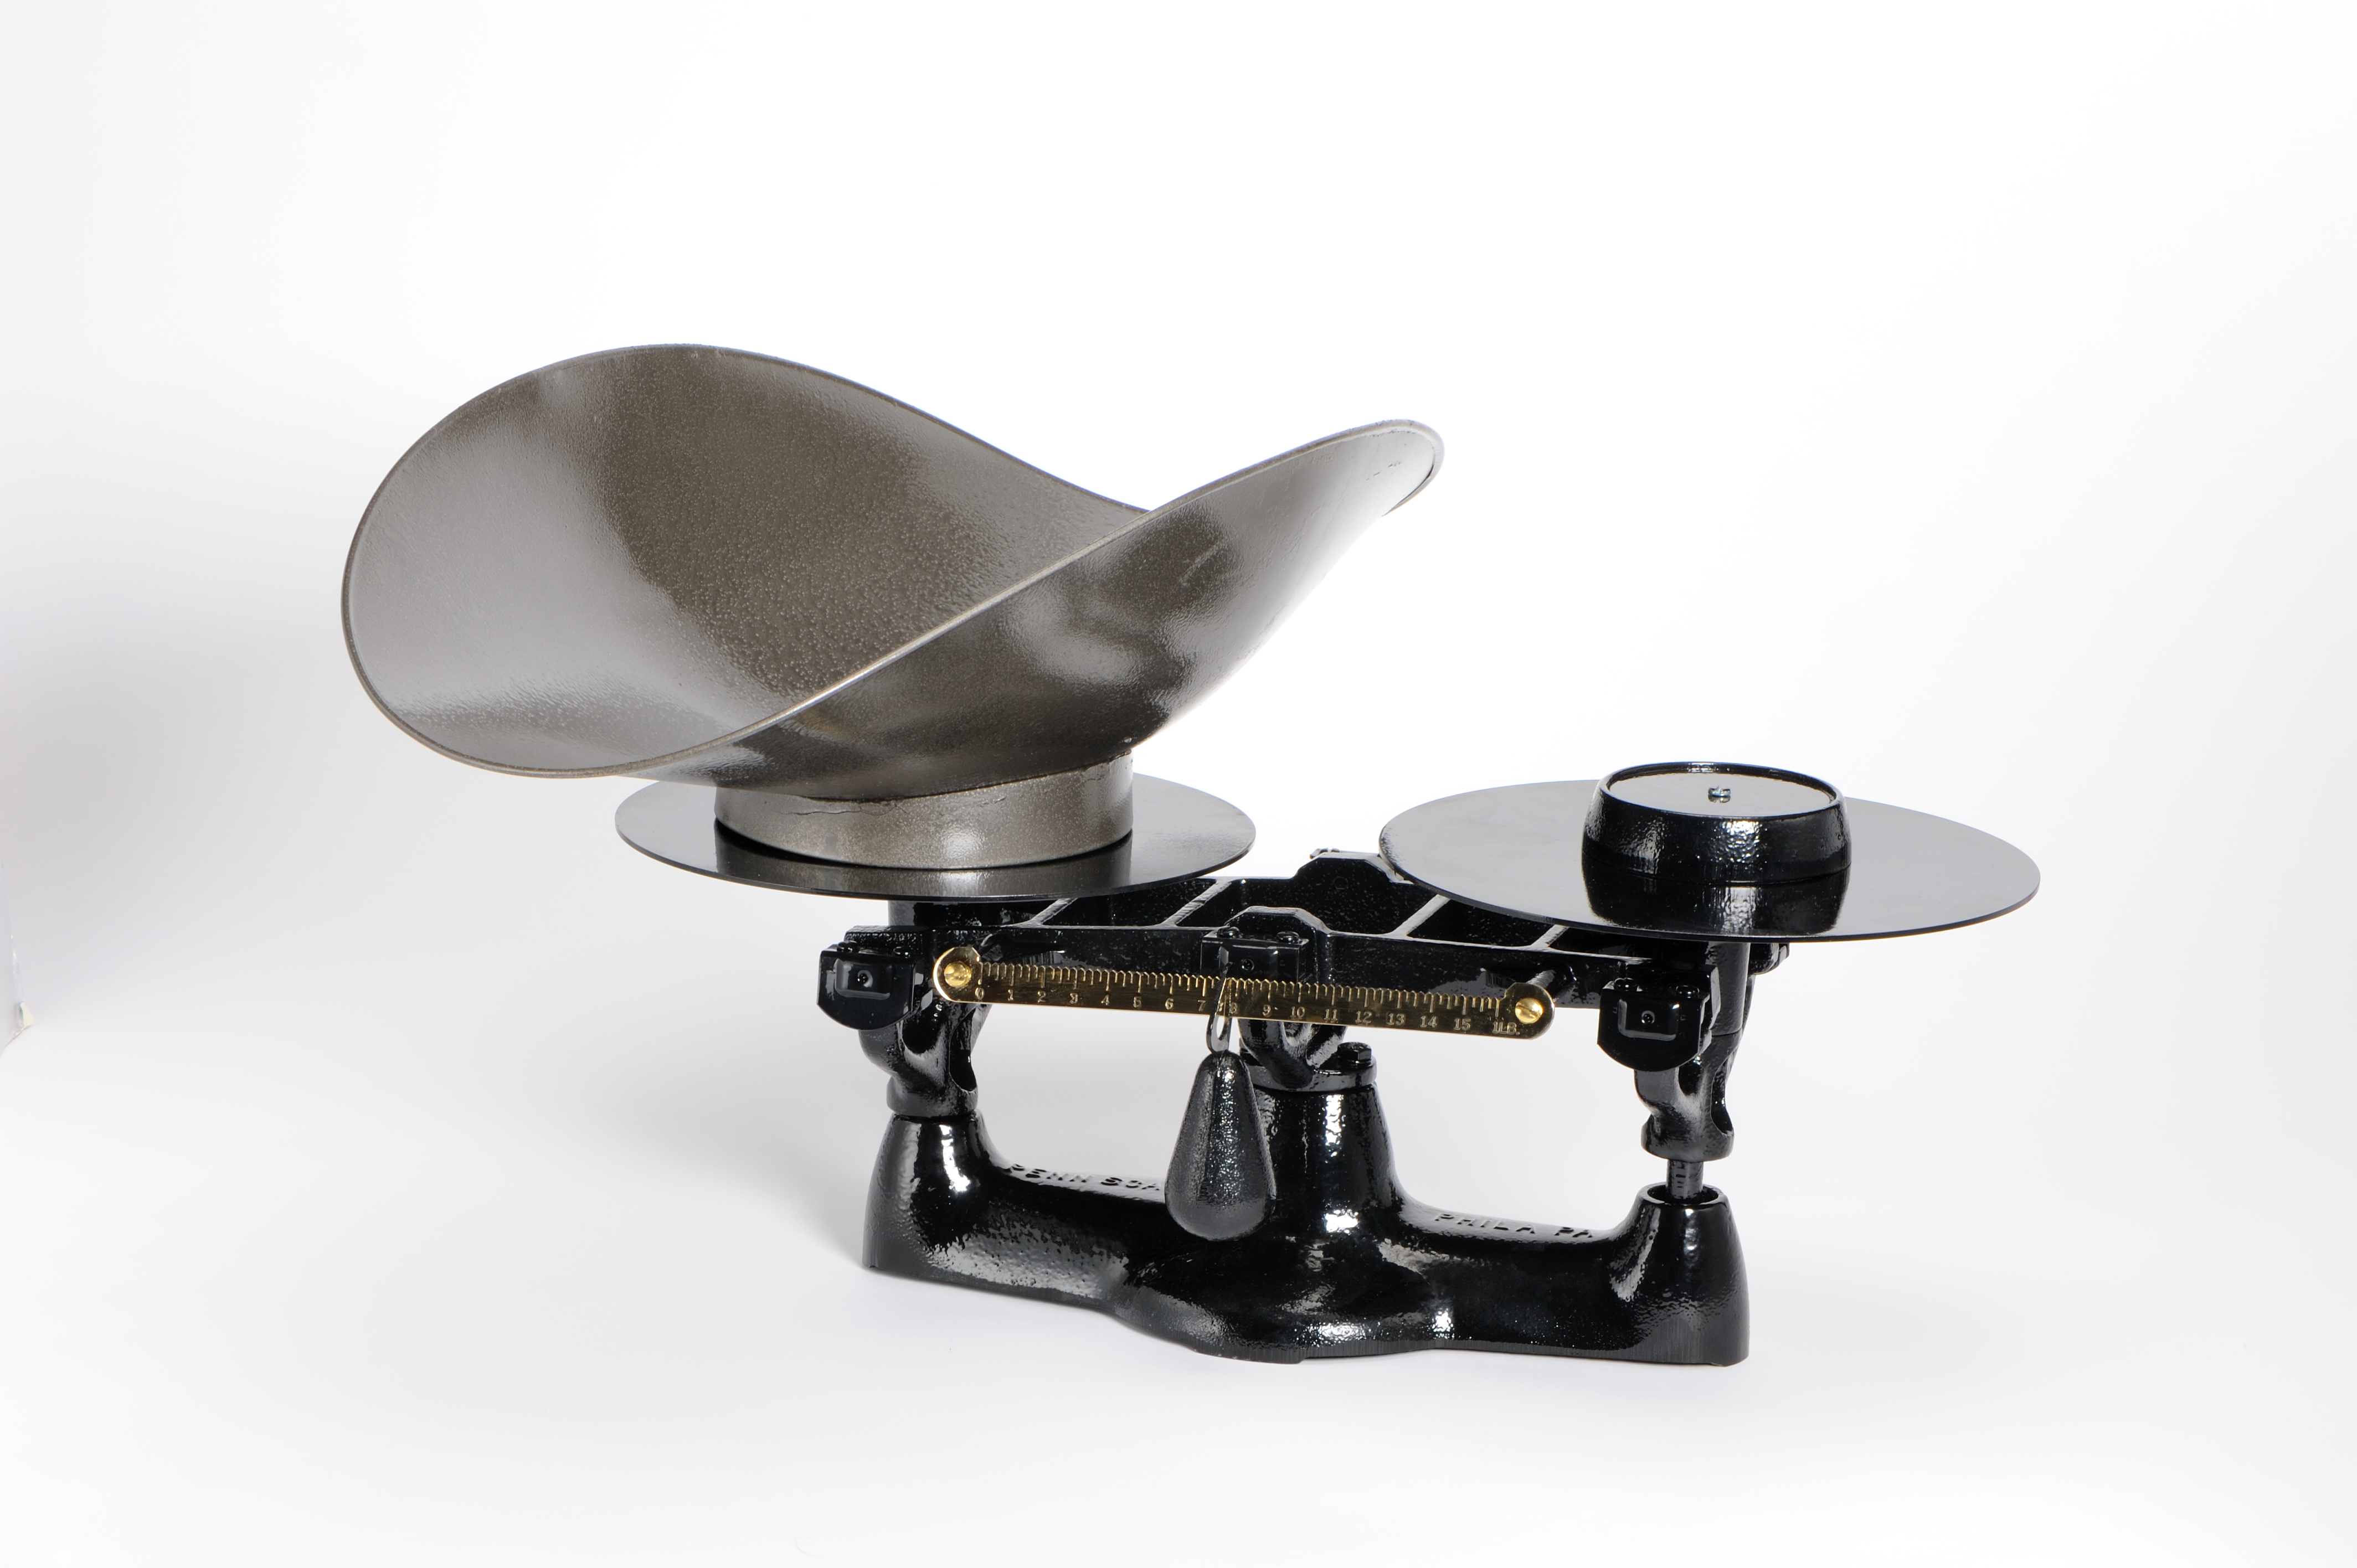 Penn Scale 1402 SS 8 Pound Bakers Scale with SS Scoop